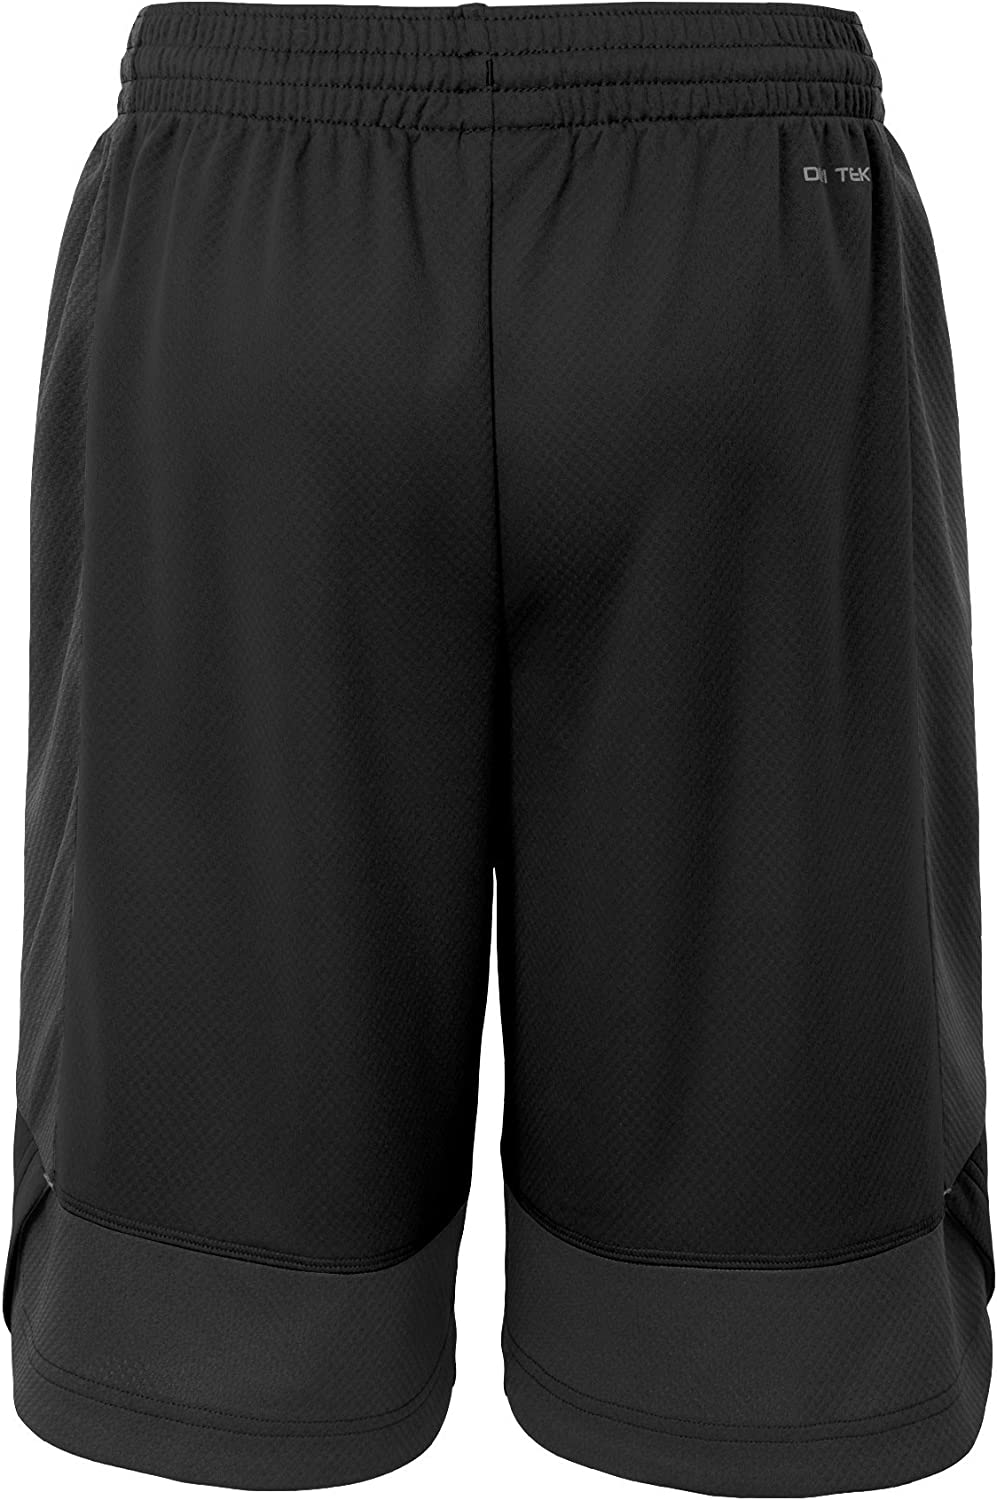 14-16 NBA Kids /& Youth Boys Jump Ball Short Sacramento Kings-Charcoal-L